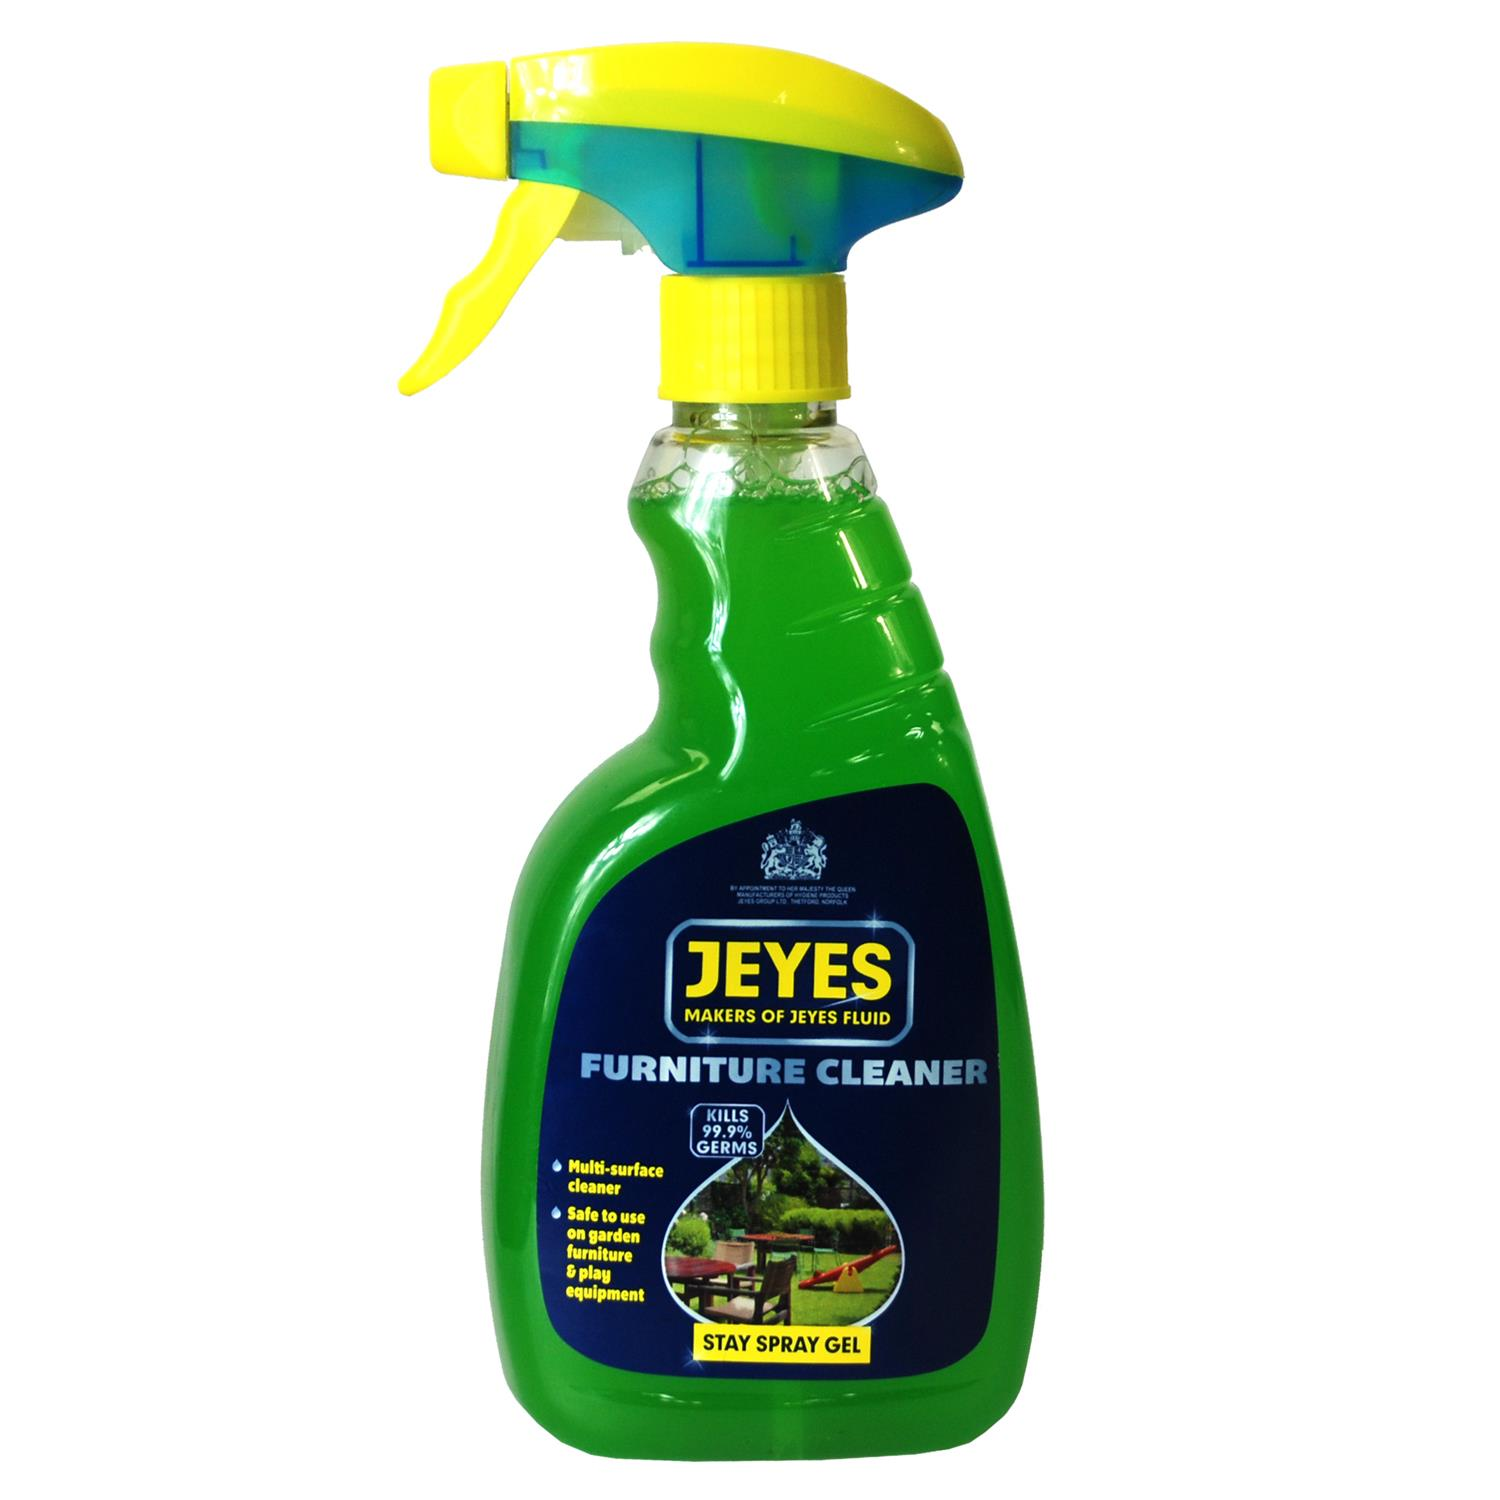 Details about Jeyes Stay Spray Gel Furniture Cleaner 10ml.